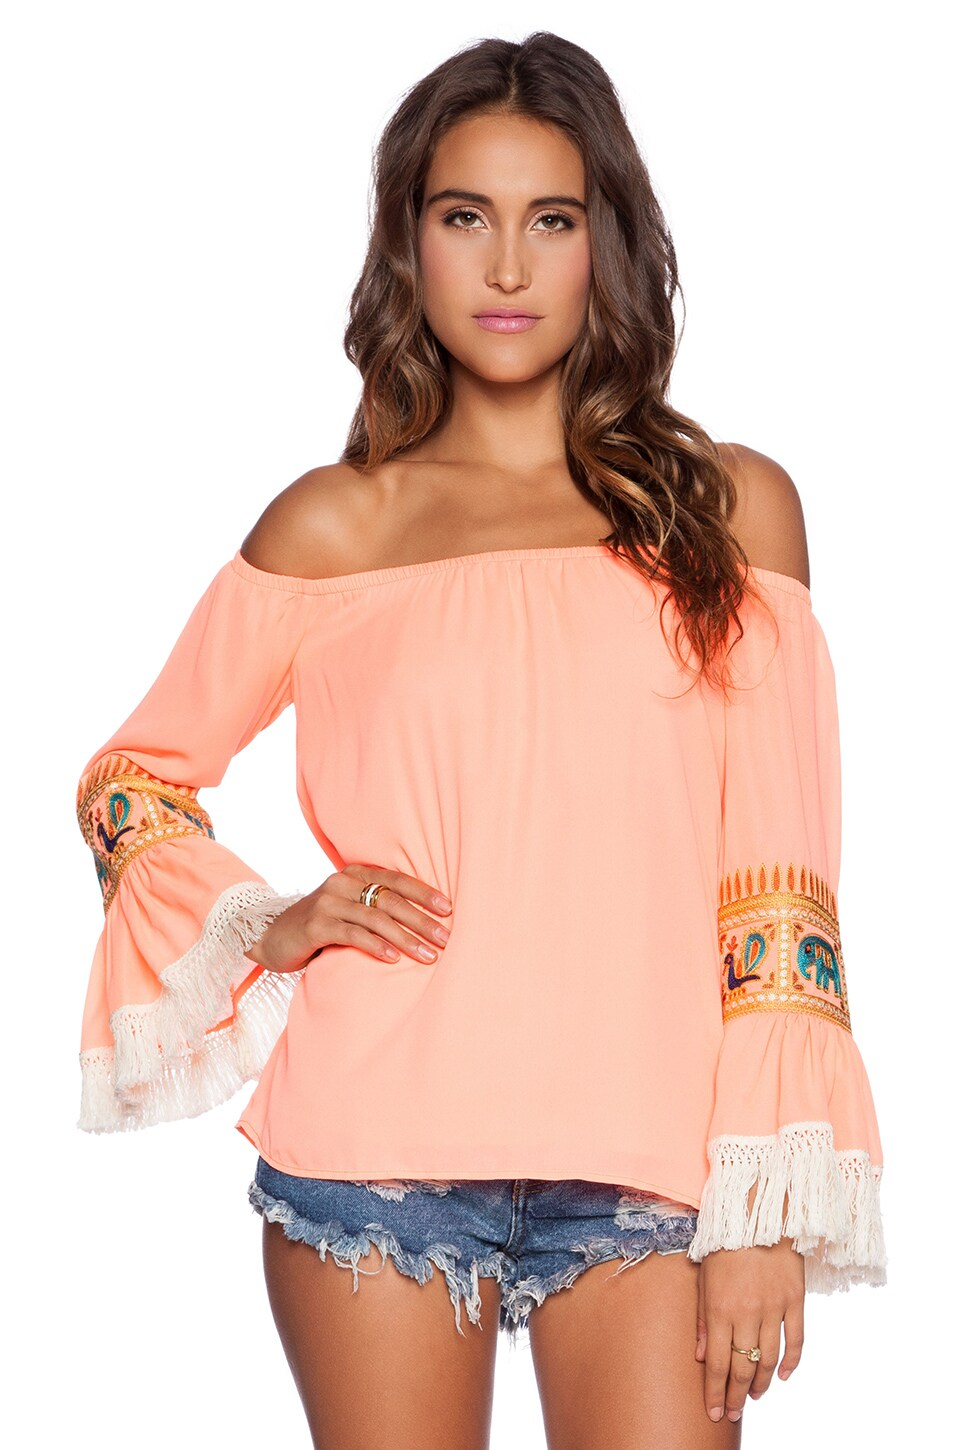 VAVA by Joy Han Chandra Off Shoulder Top in Neon Coral